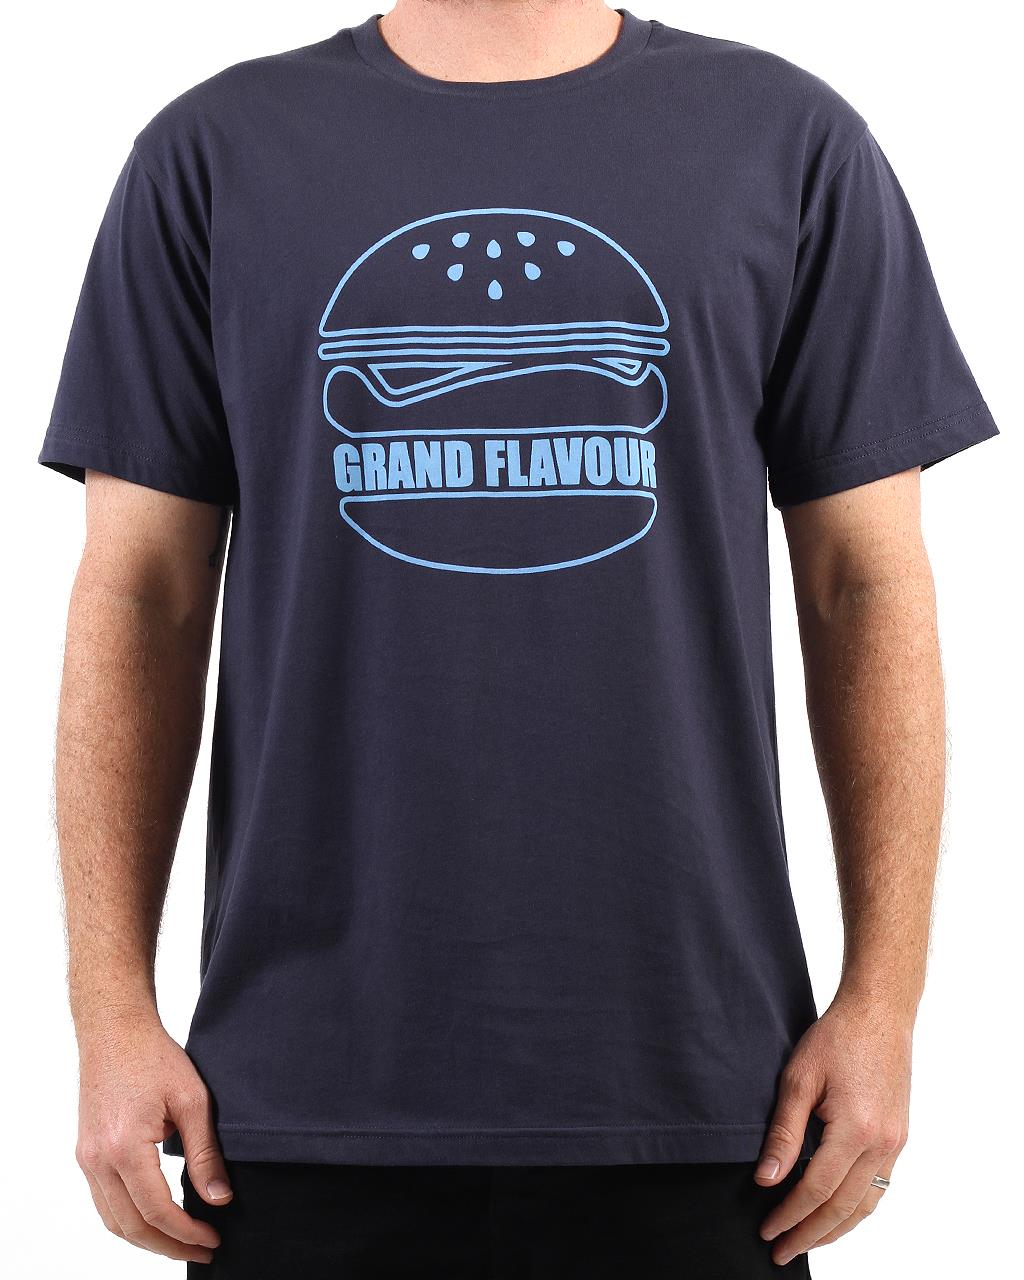 Flavor clothing store